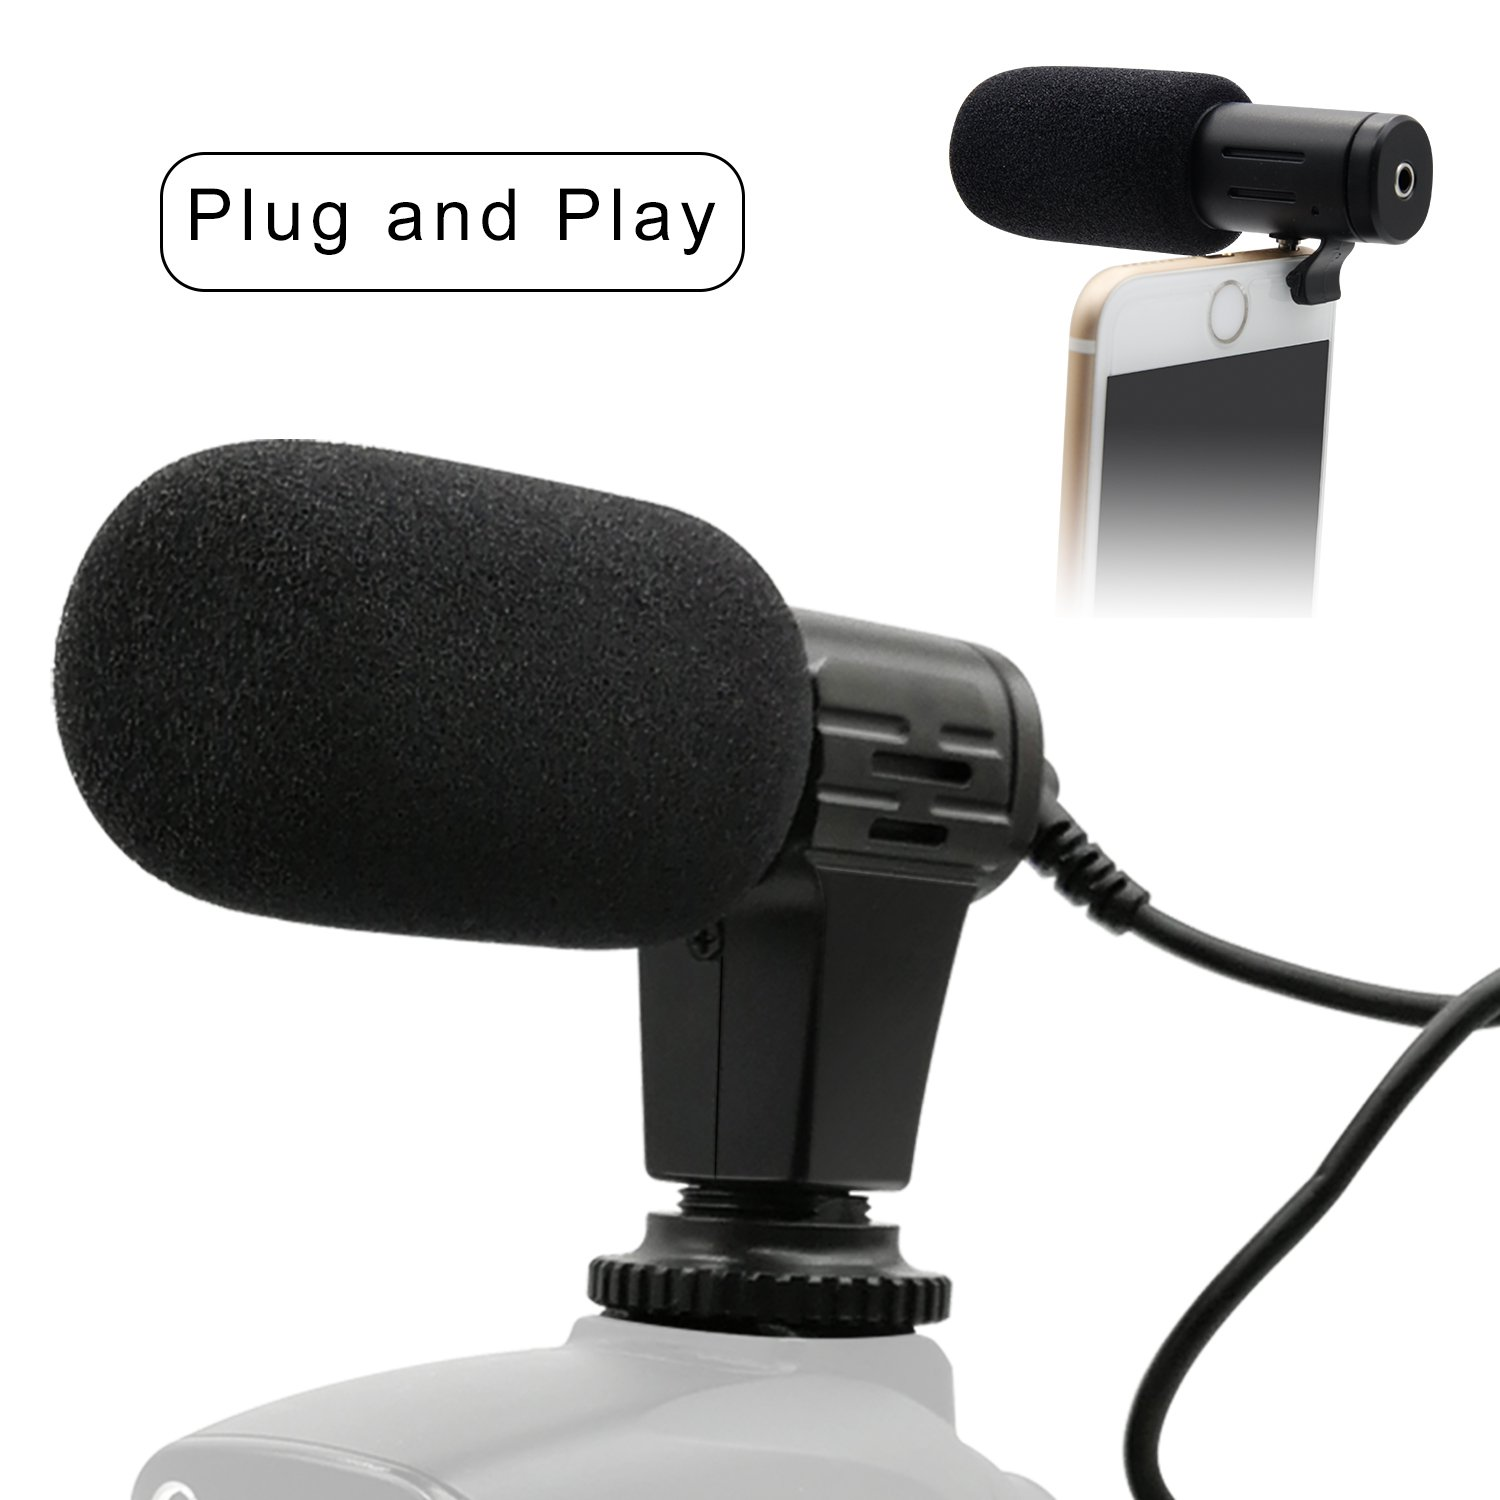 PLOTURE Camera Microphone, Video Interview Microphone Directional Recording Shotgun Mic with Shock Mount for iPhone/Andoid Smartphones, Nikon/Canon/Sony Camera/DV Camcorder Audio Recorder PC (MIC1)